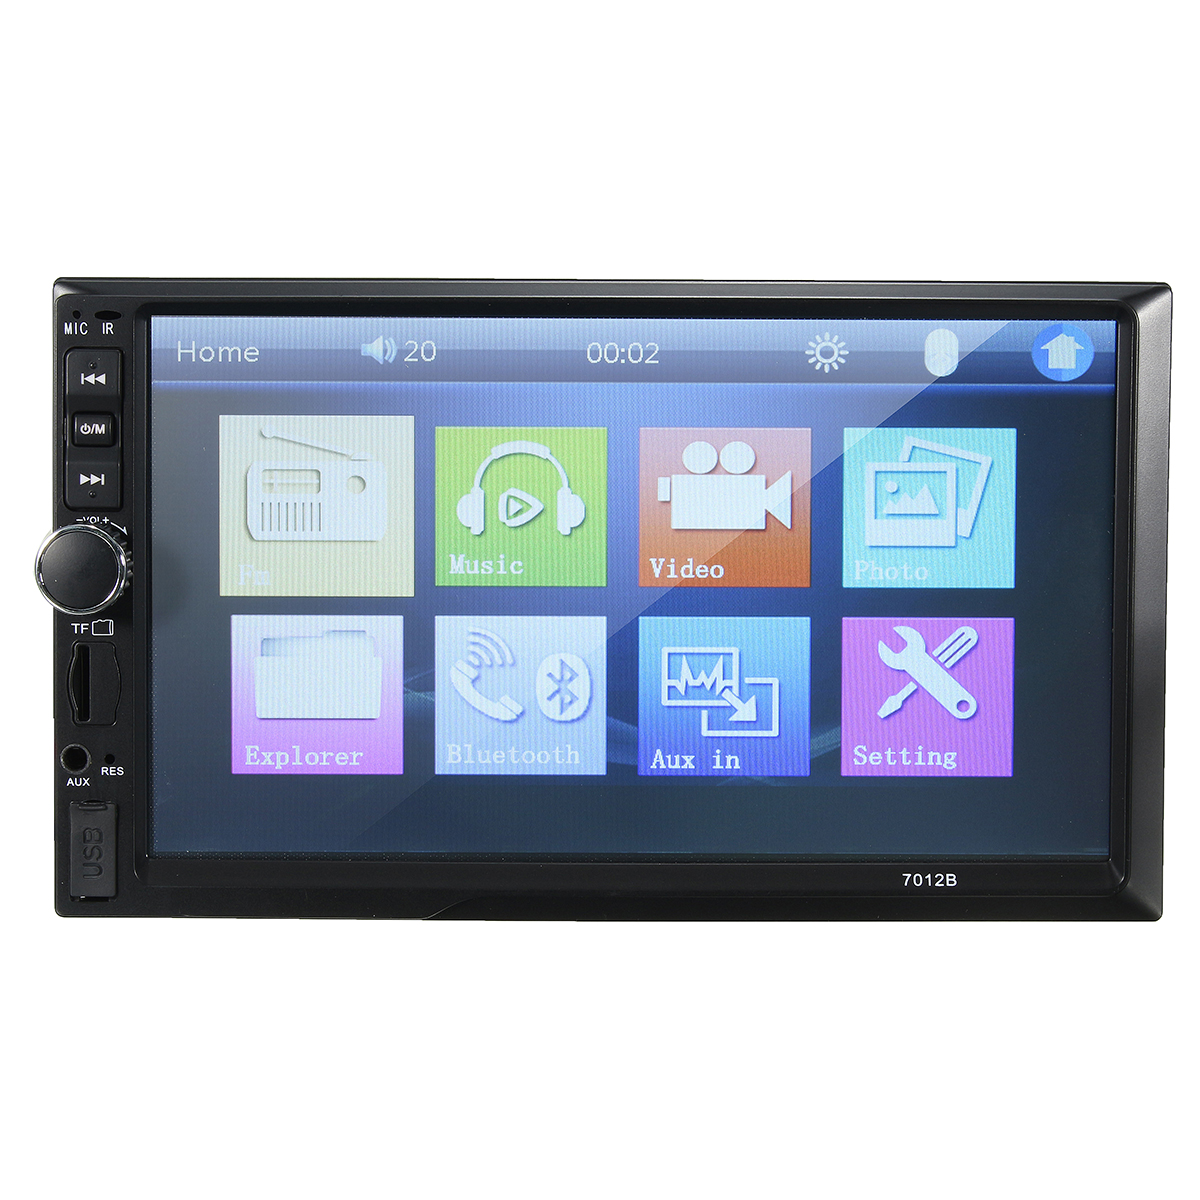 7012B 7 Inch Double DIN Car MP5 Player Radio Stereo bluetooth MP4 FM Touch Screen Support Rear Camera